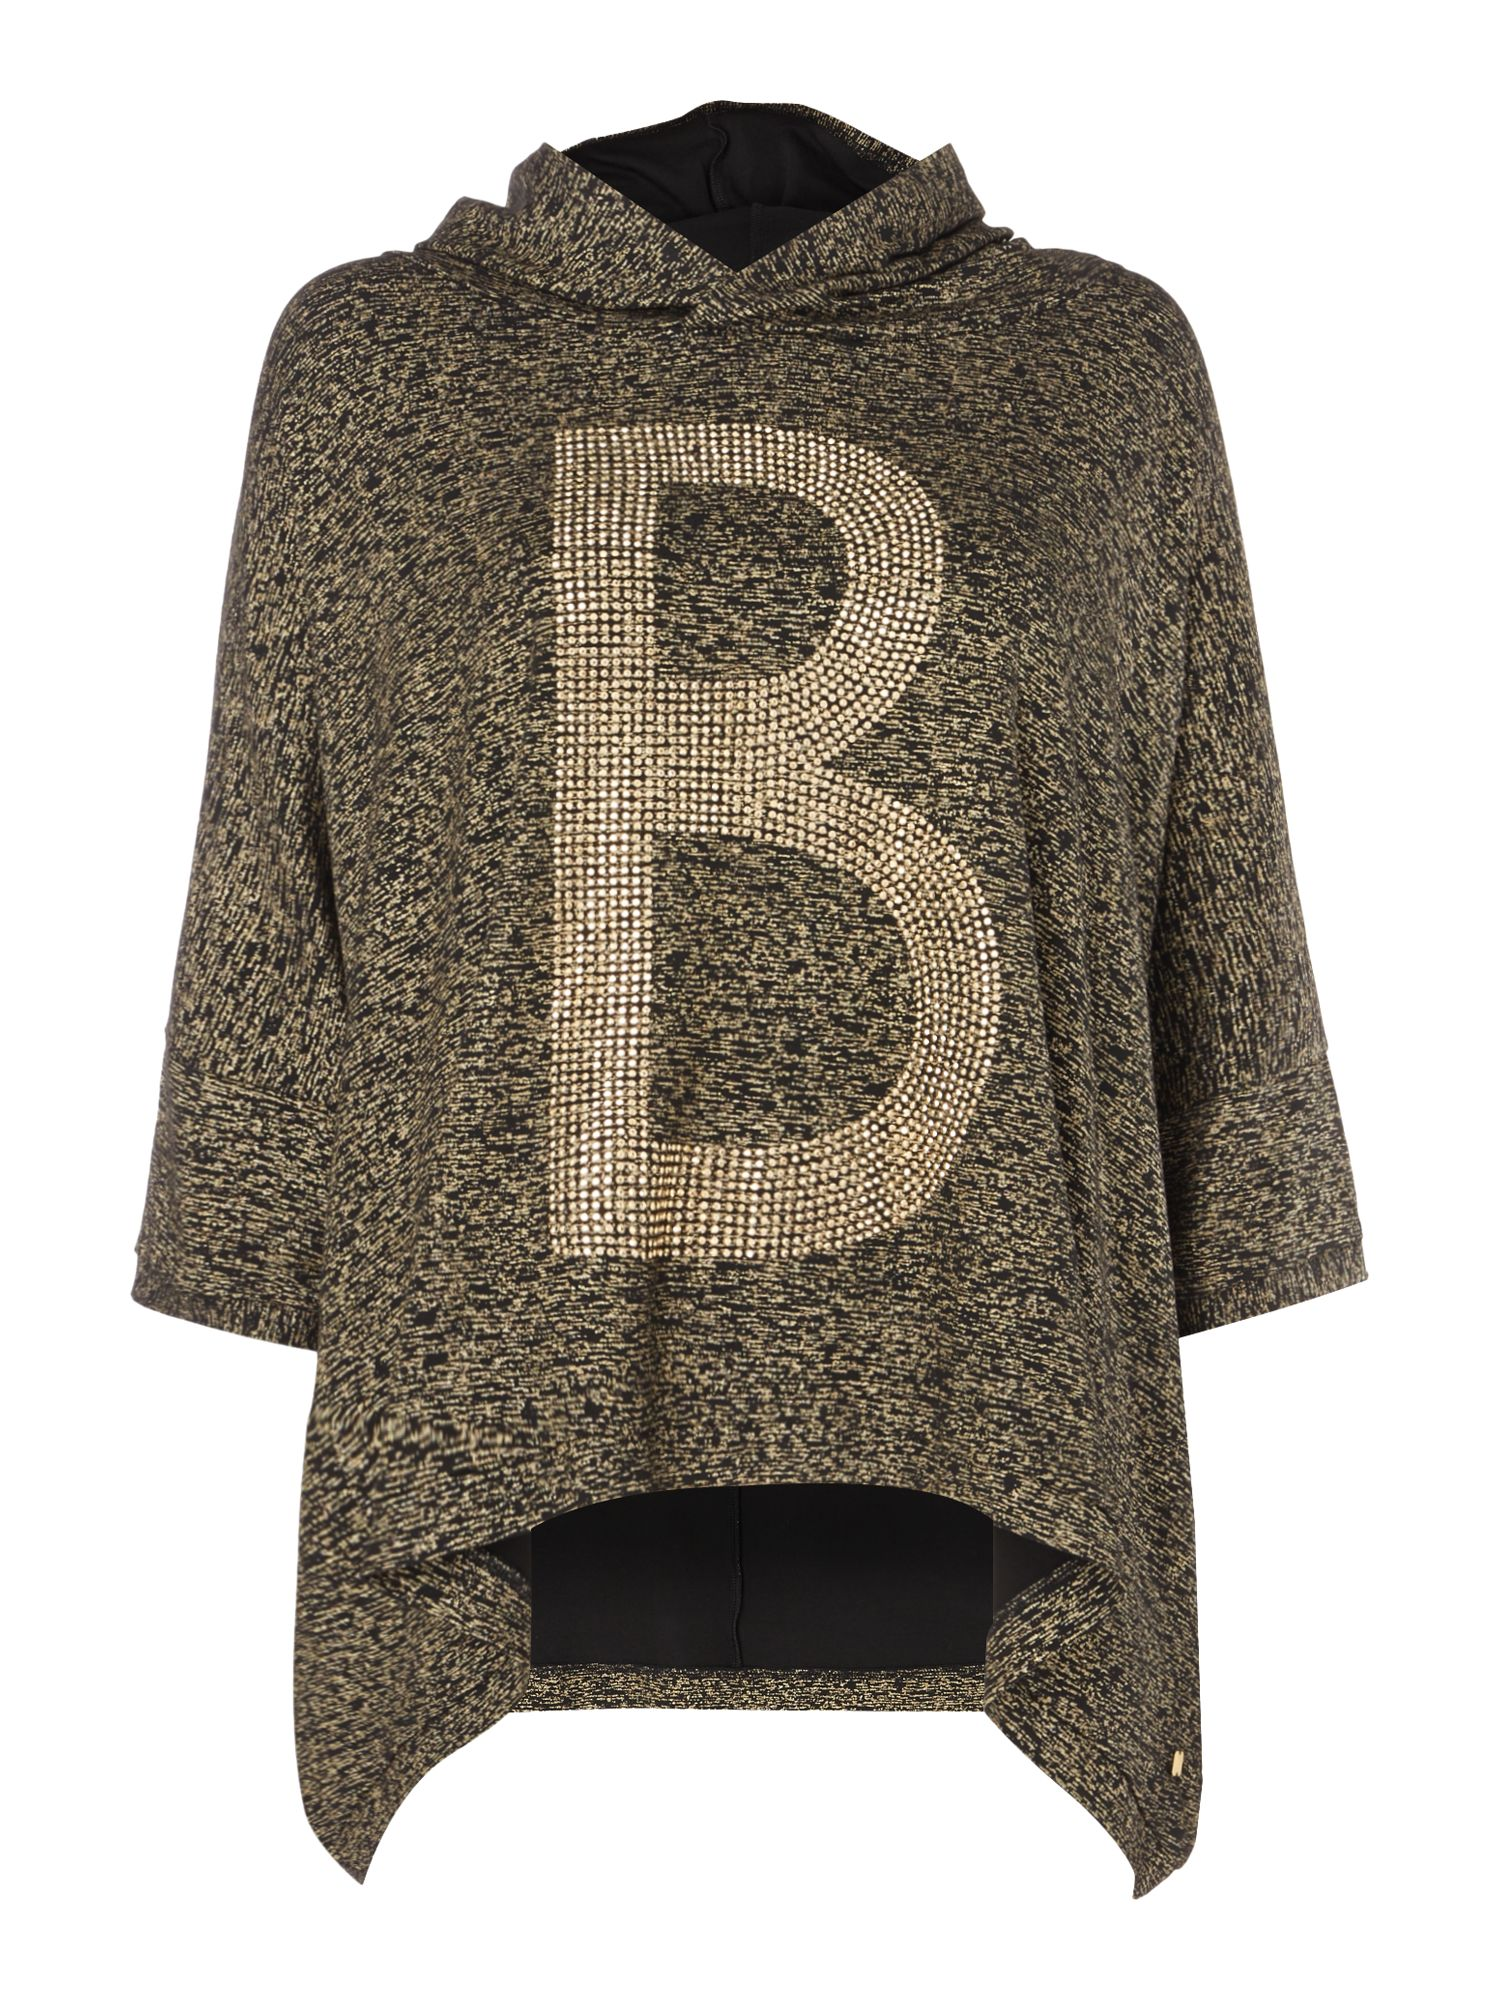 Biba Biba Luxe casualwear embellished hooded jumper, Gold